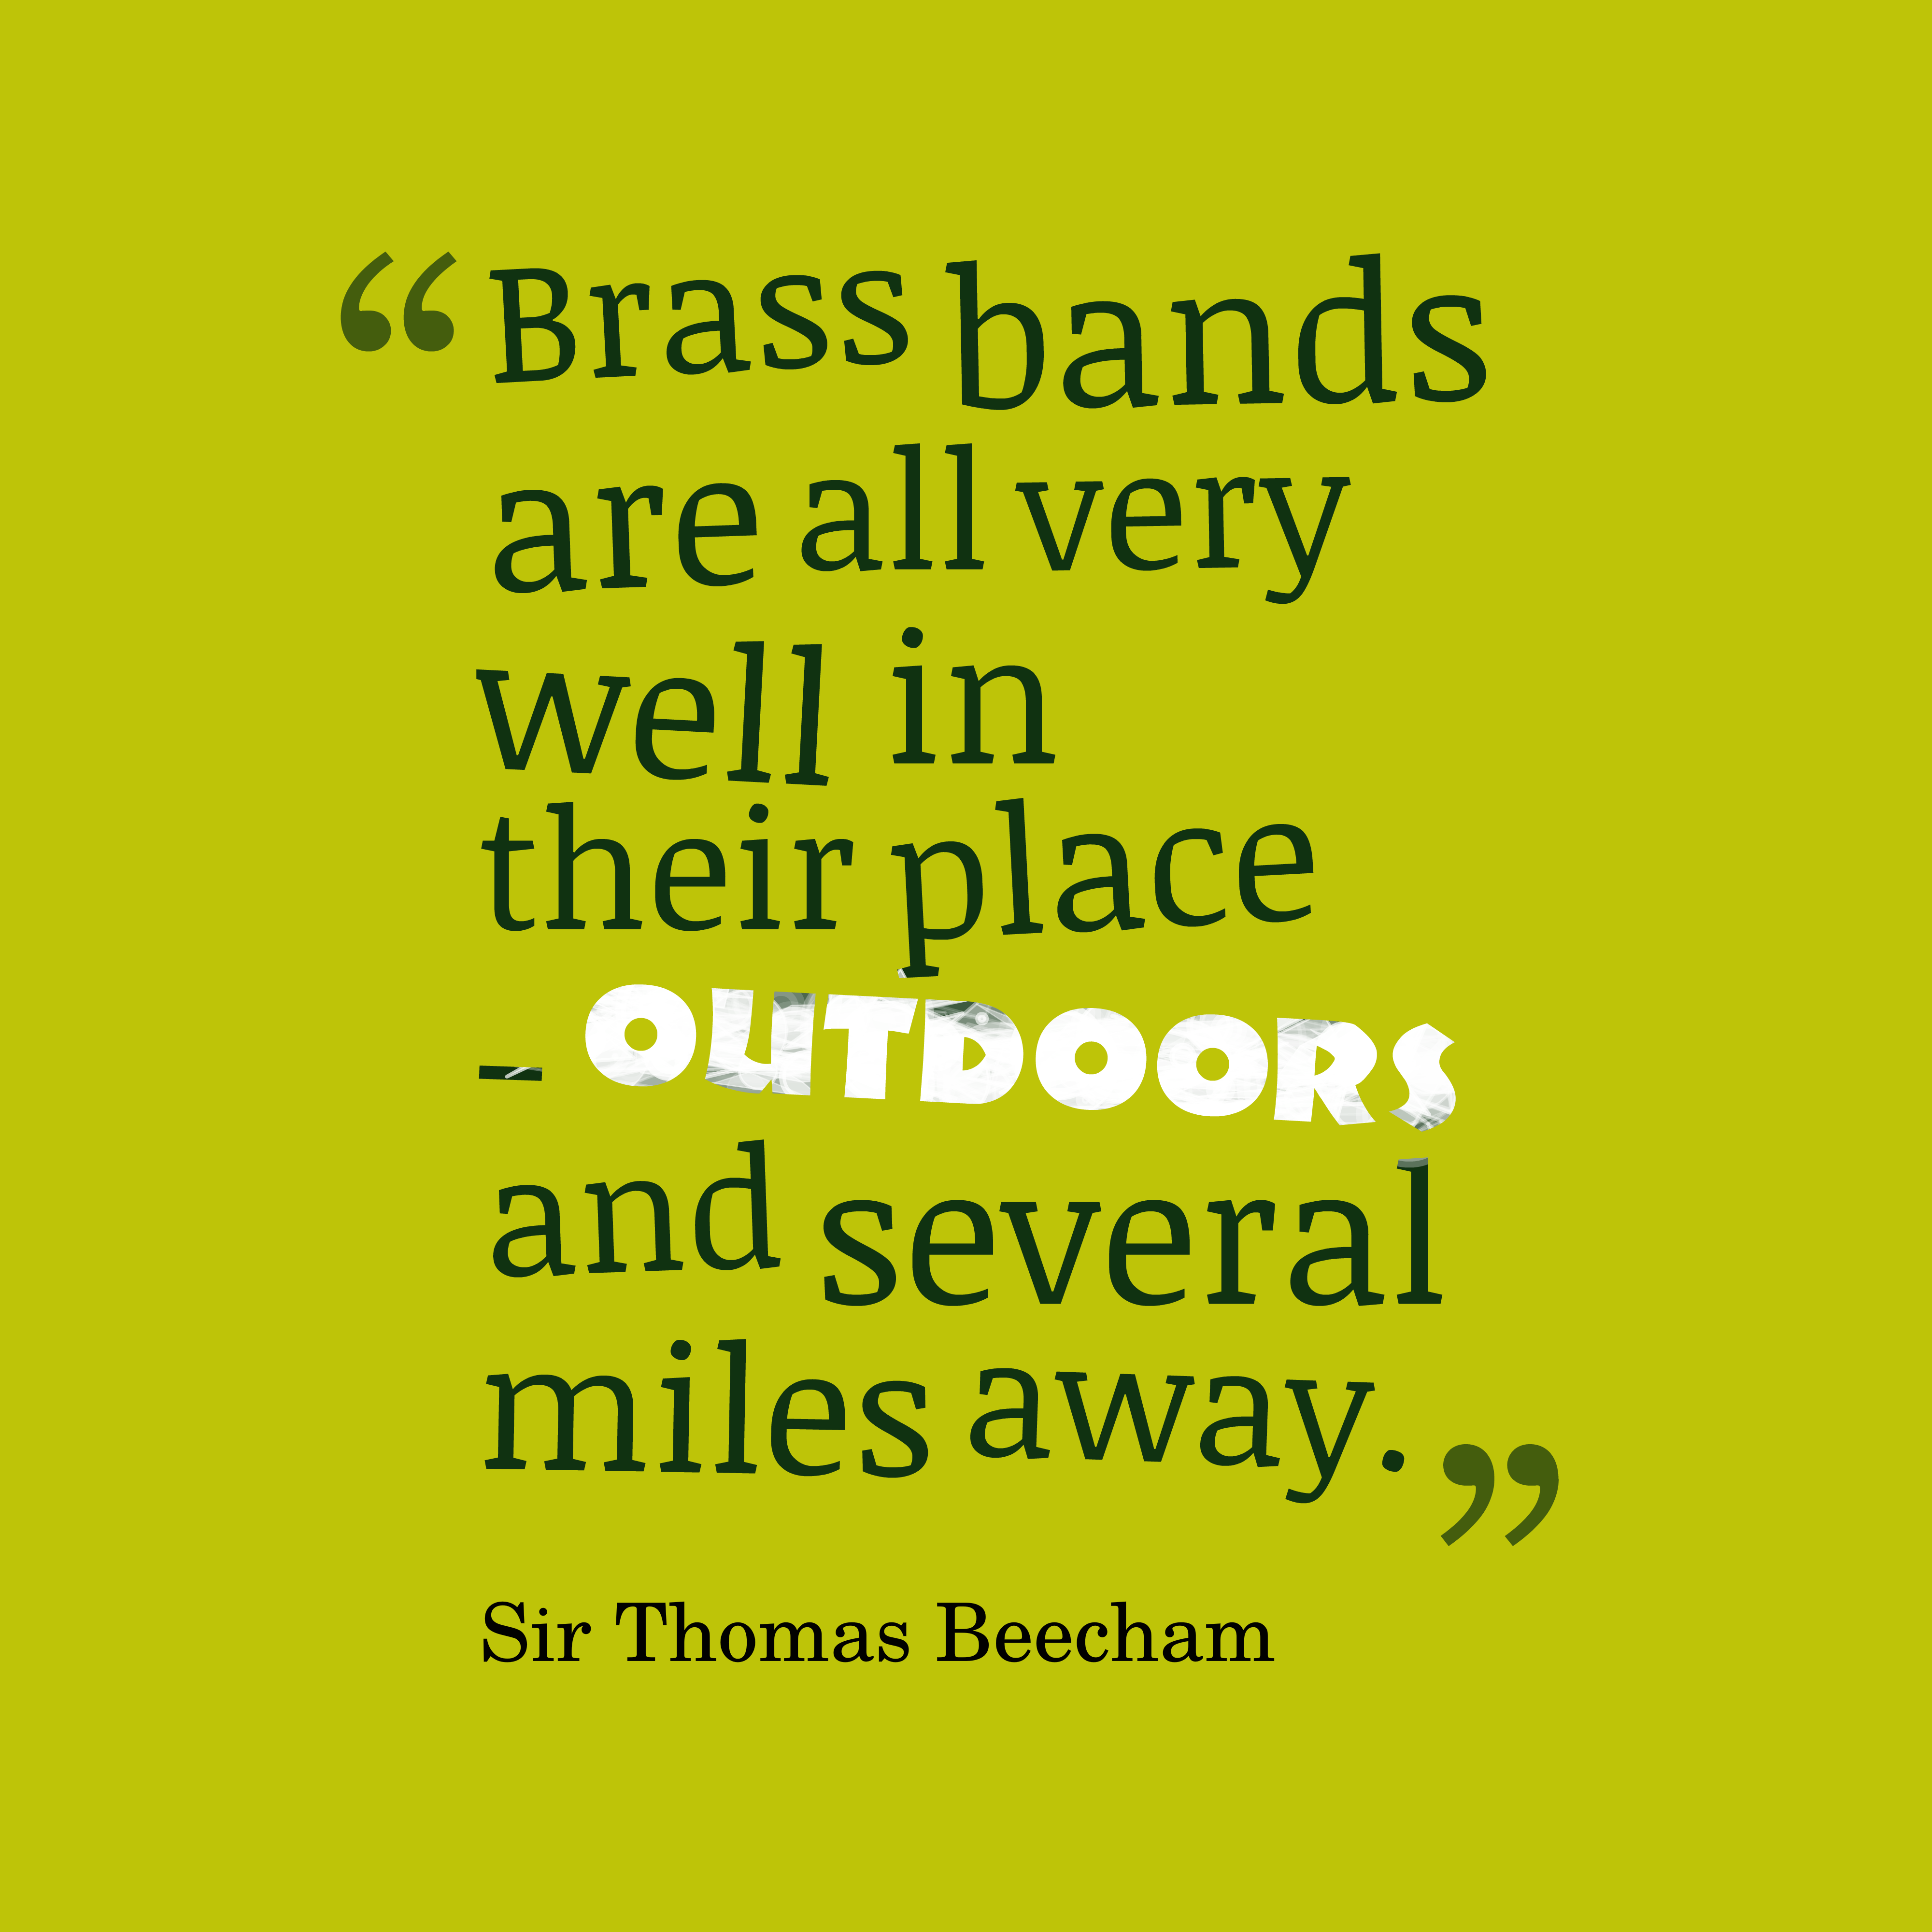 Quotes image of Brass bands are all very well in their place - outdoors and several miles away.